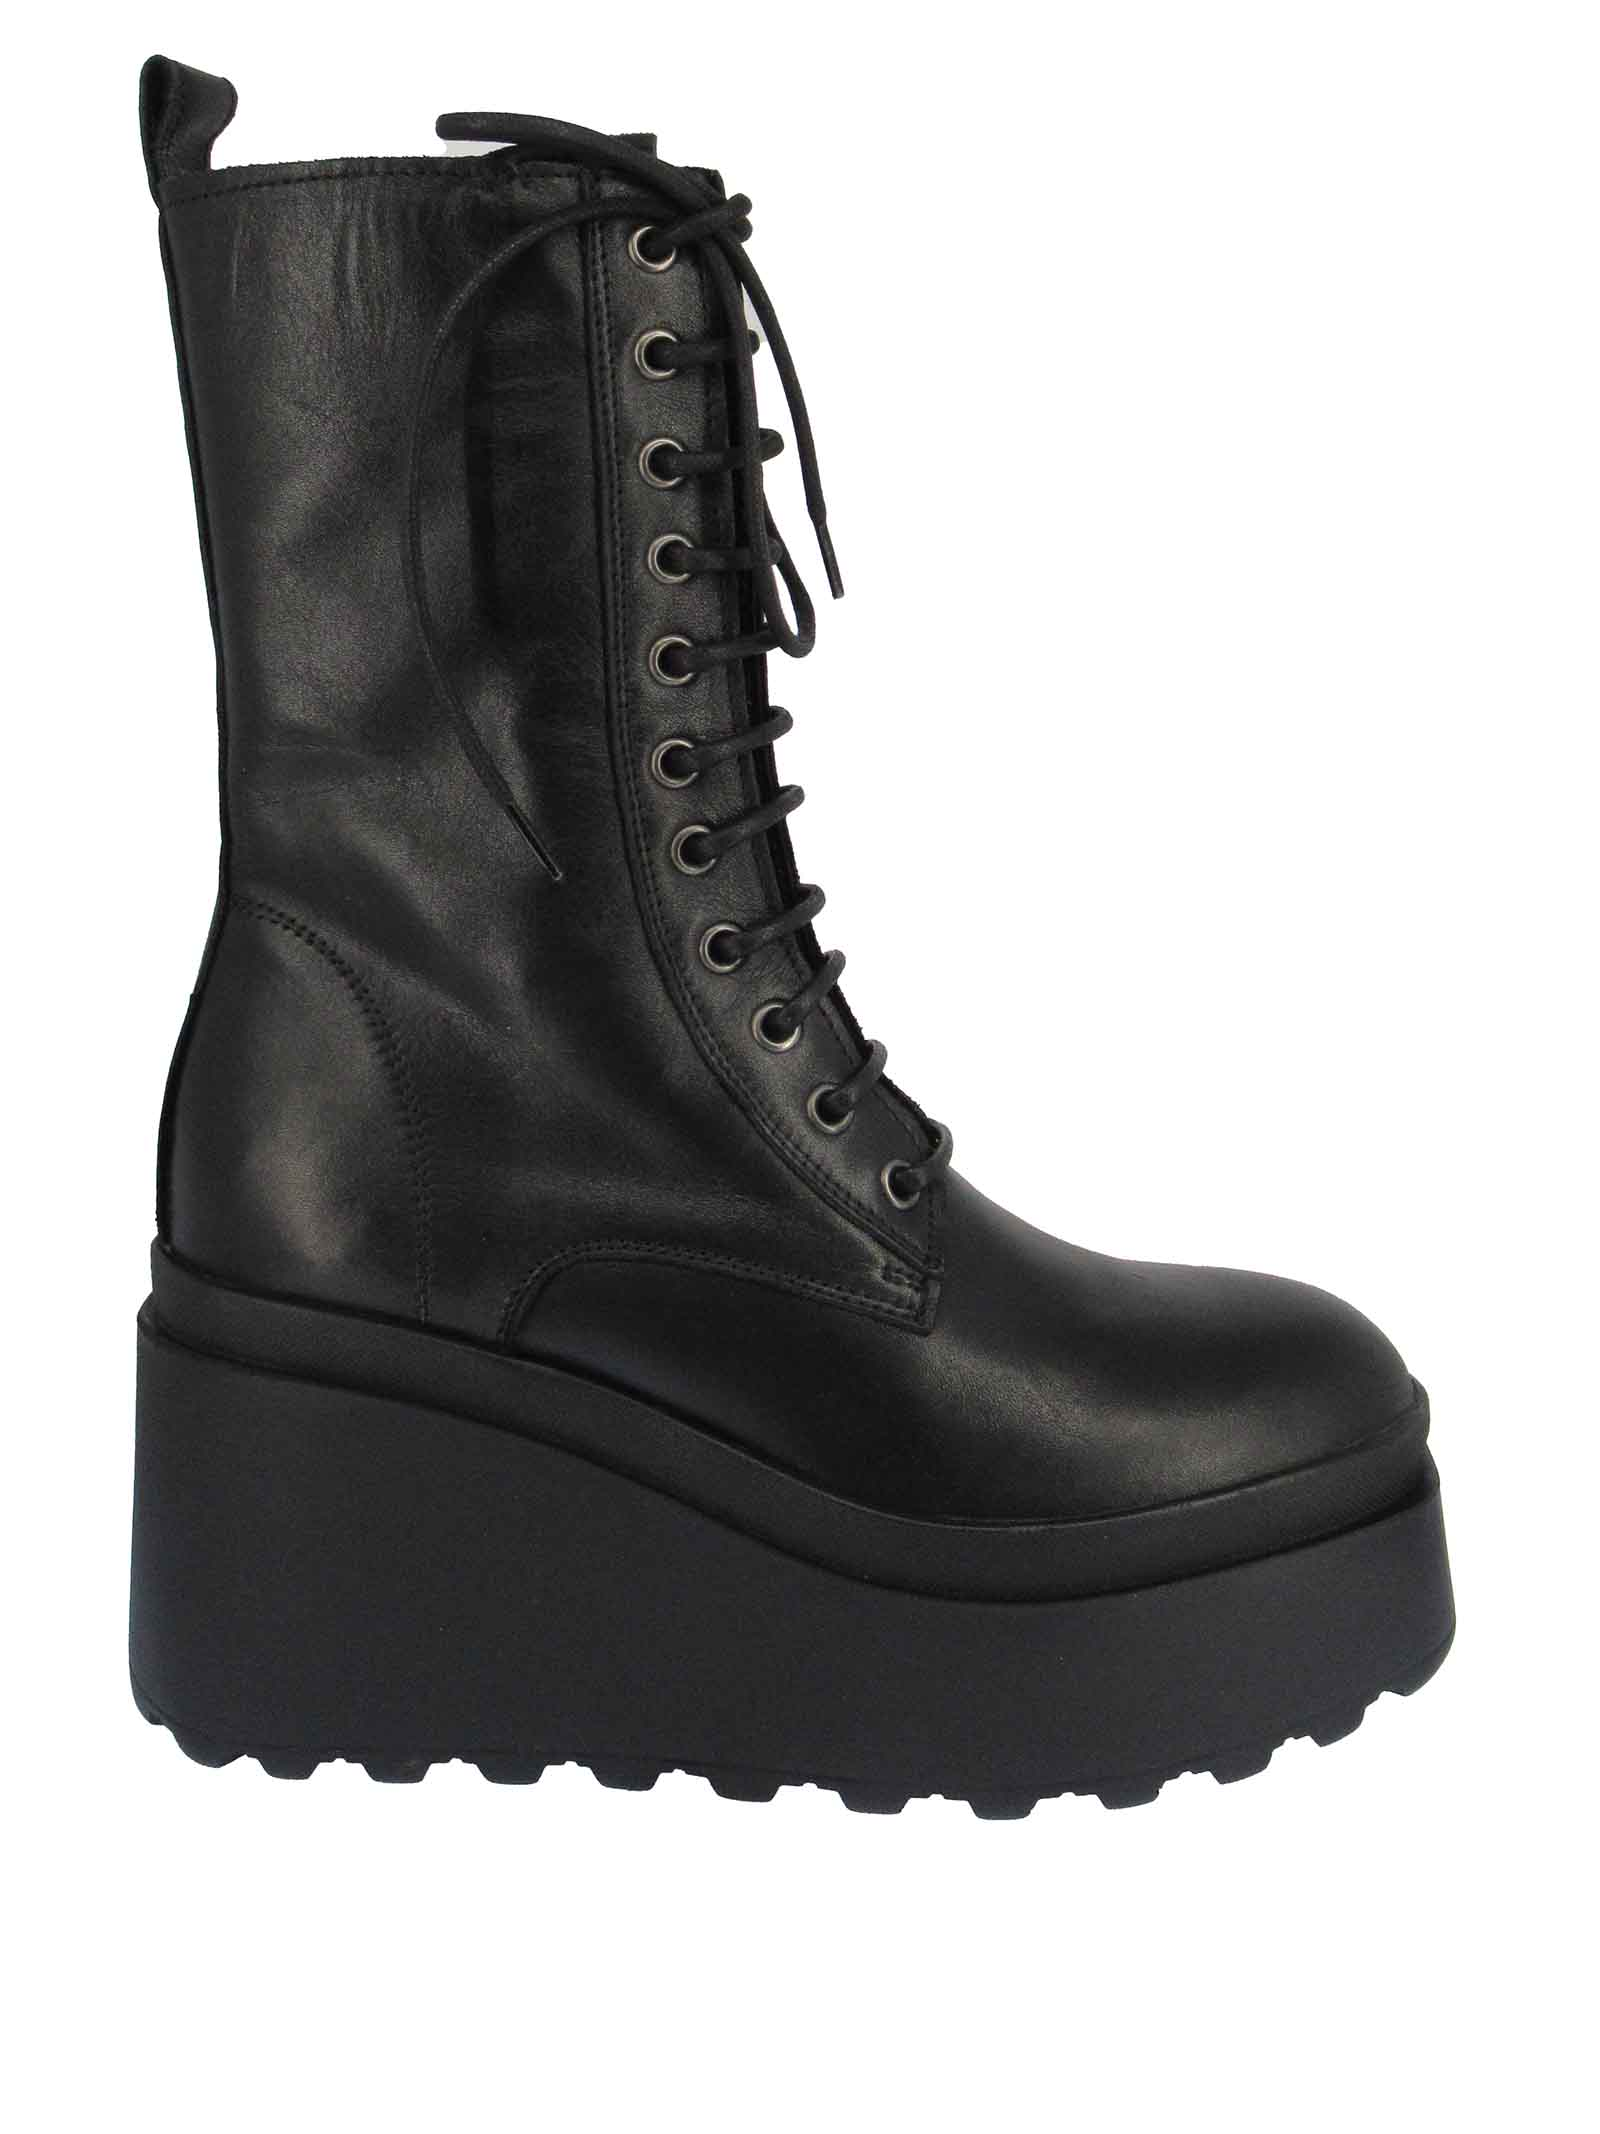 Women's Shoes Lace-up Boots in Black Leather with Side Zip and High Wedge Sole Tattoo | Ankle Boots | JOLLY 2001